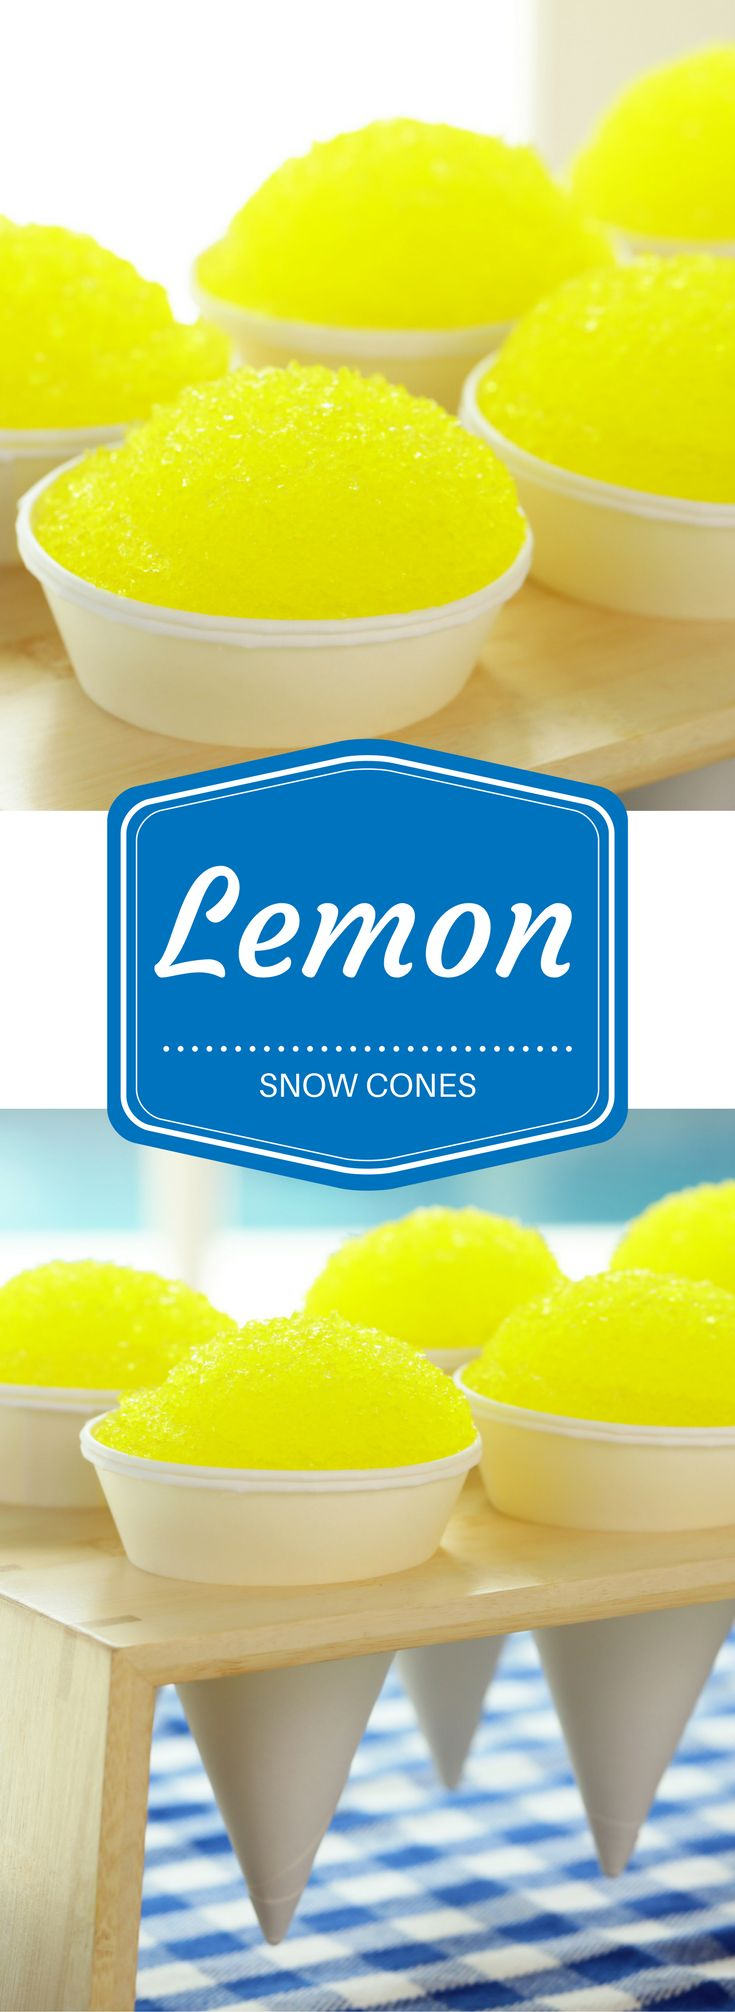 "These Lemon Snow cones are the cutest idea for summer. This is a recipe from Nerdy Nummies inspired by the Monsters Inc. scene when the abominable snow man is trying to cheer up Mike Wazowski - ""Don't worry, they're LEMON!"""